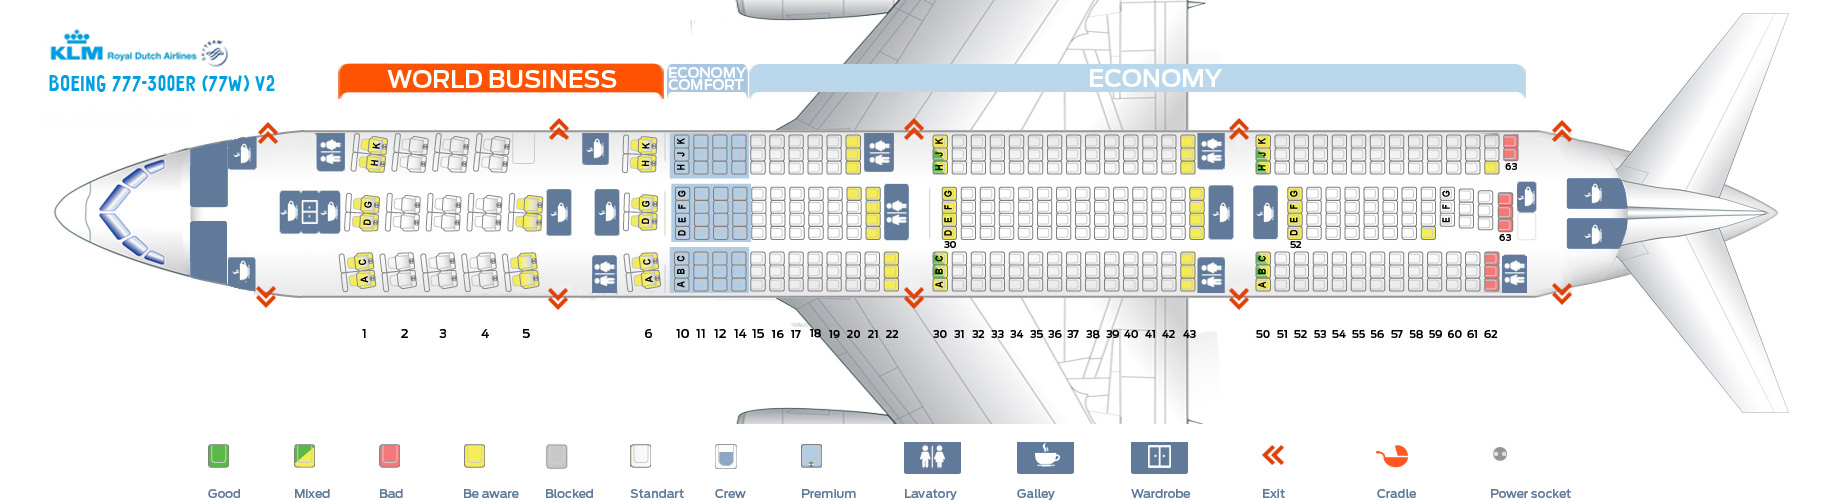 Seat Map And Seating Chart Klm Boeing 777 300er New World Business Layout